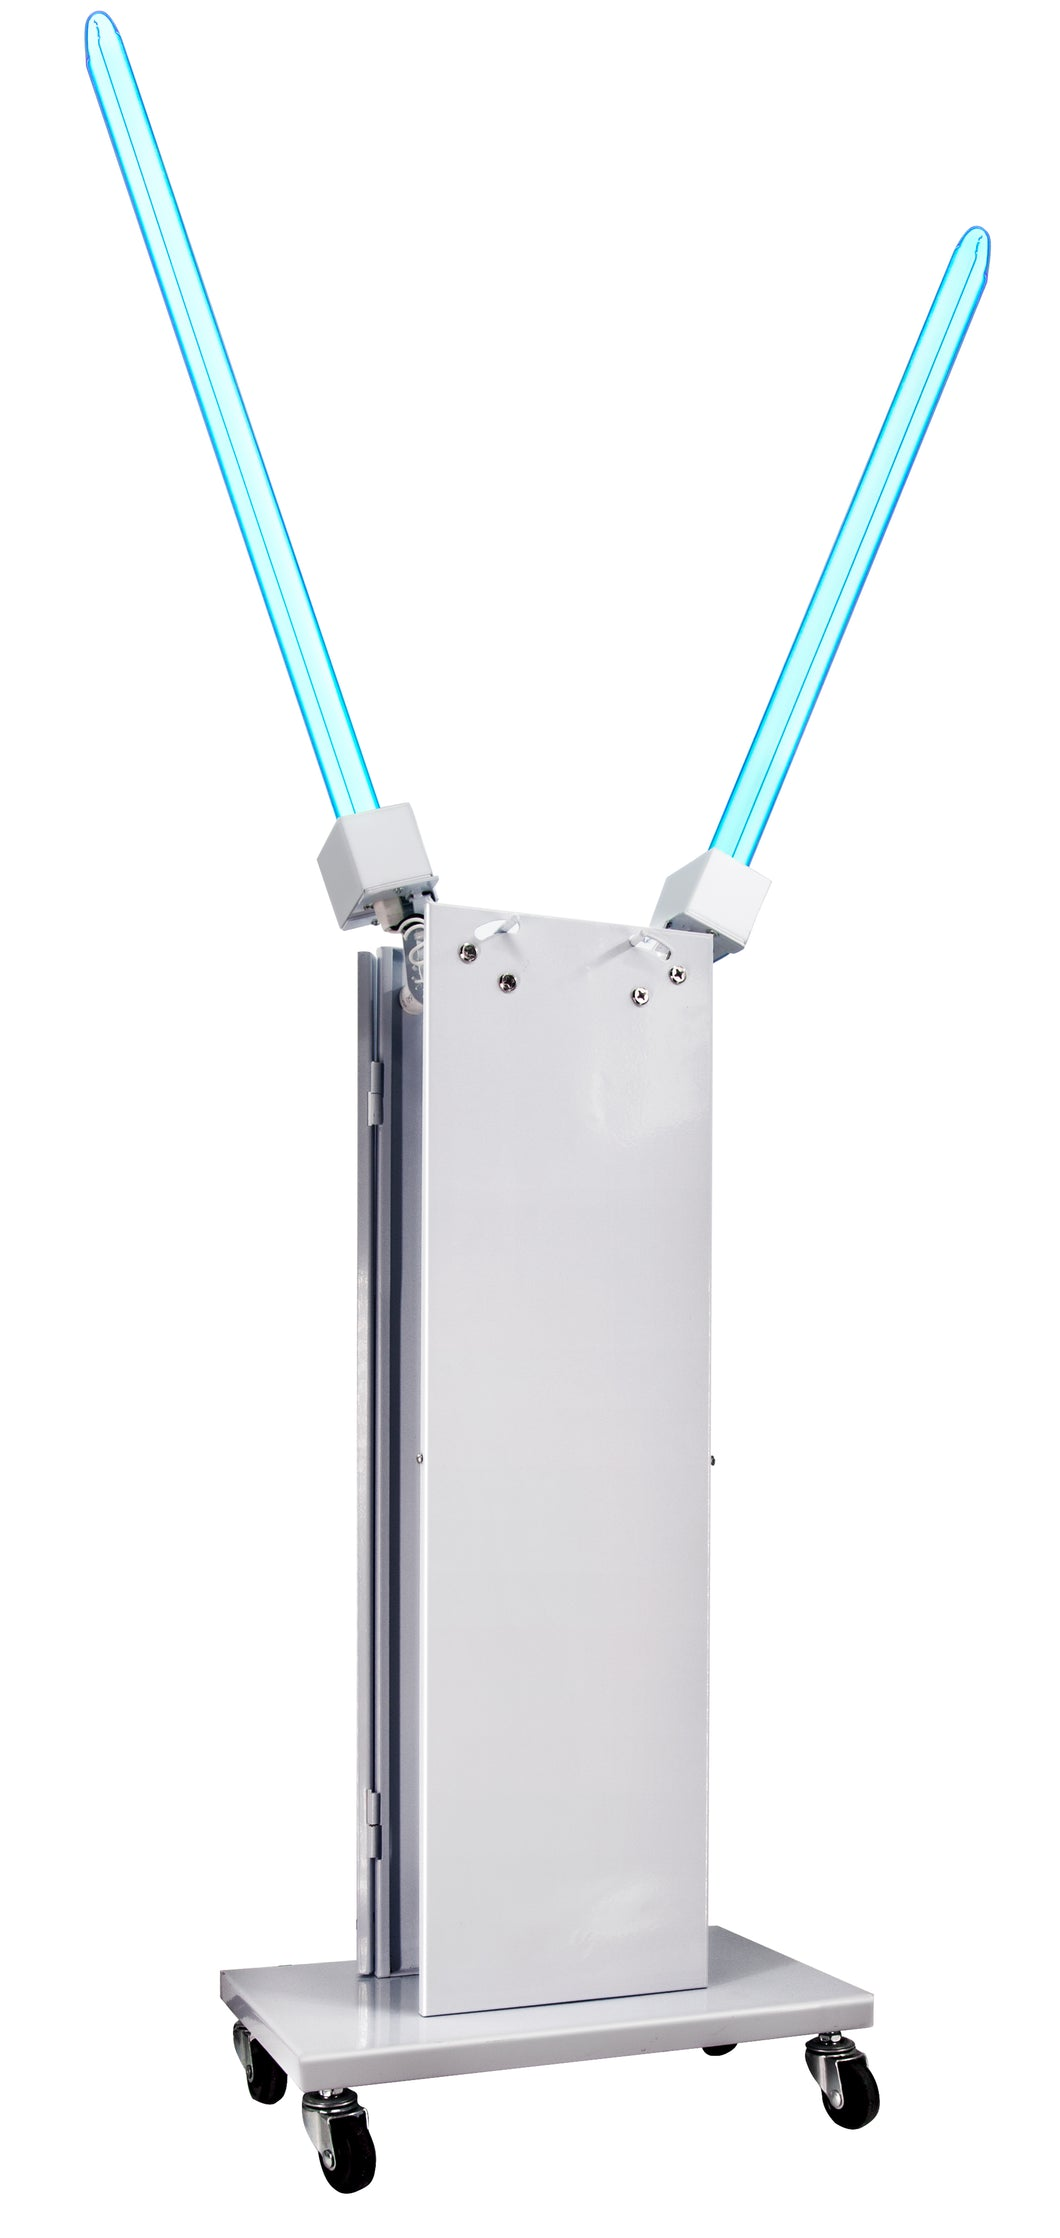 200W UV-C Lamp with remote control and timer. - MrSterilizer